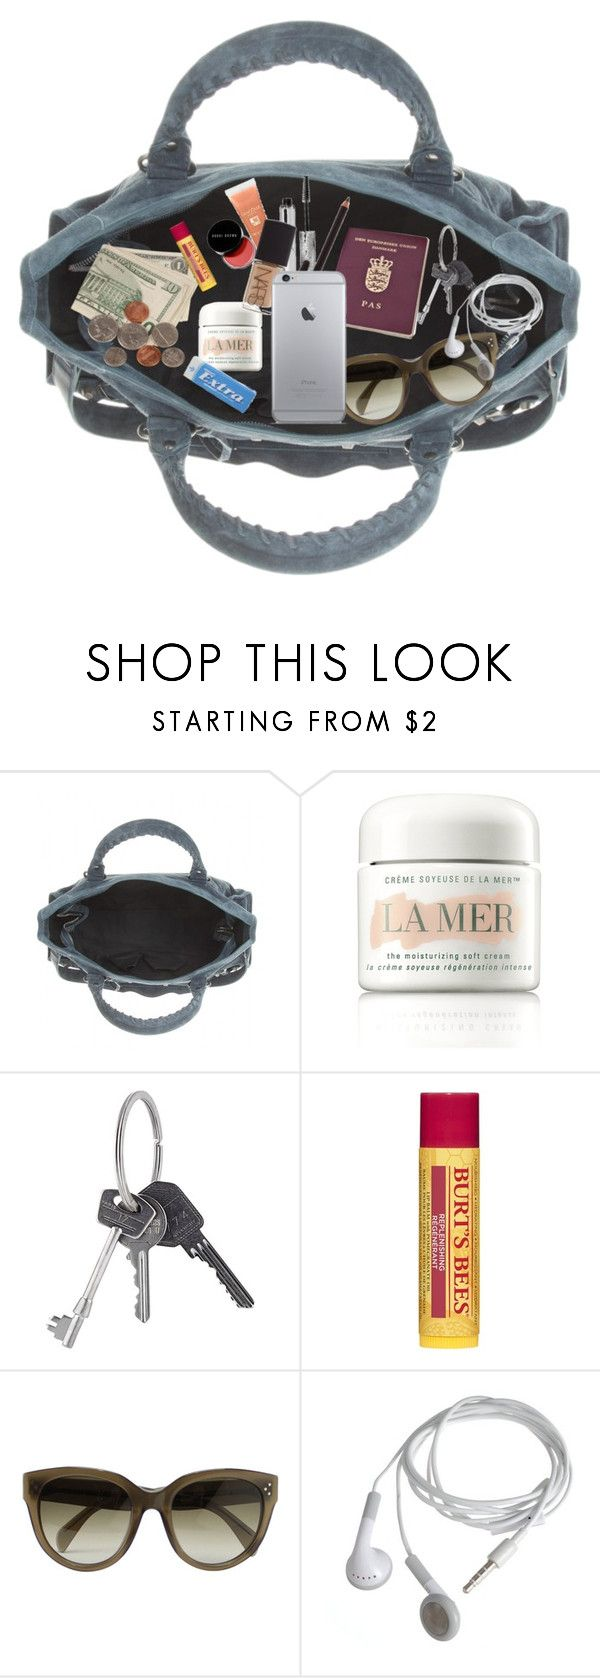 """""""IN MY PURSE"""" by nanna-holm ❤ liked on Polyvore featuring Balenciaga, La Mer, Givenchy, Burt's Bees, CÉLINE and Dansk"""